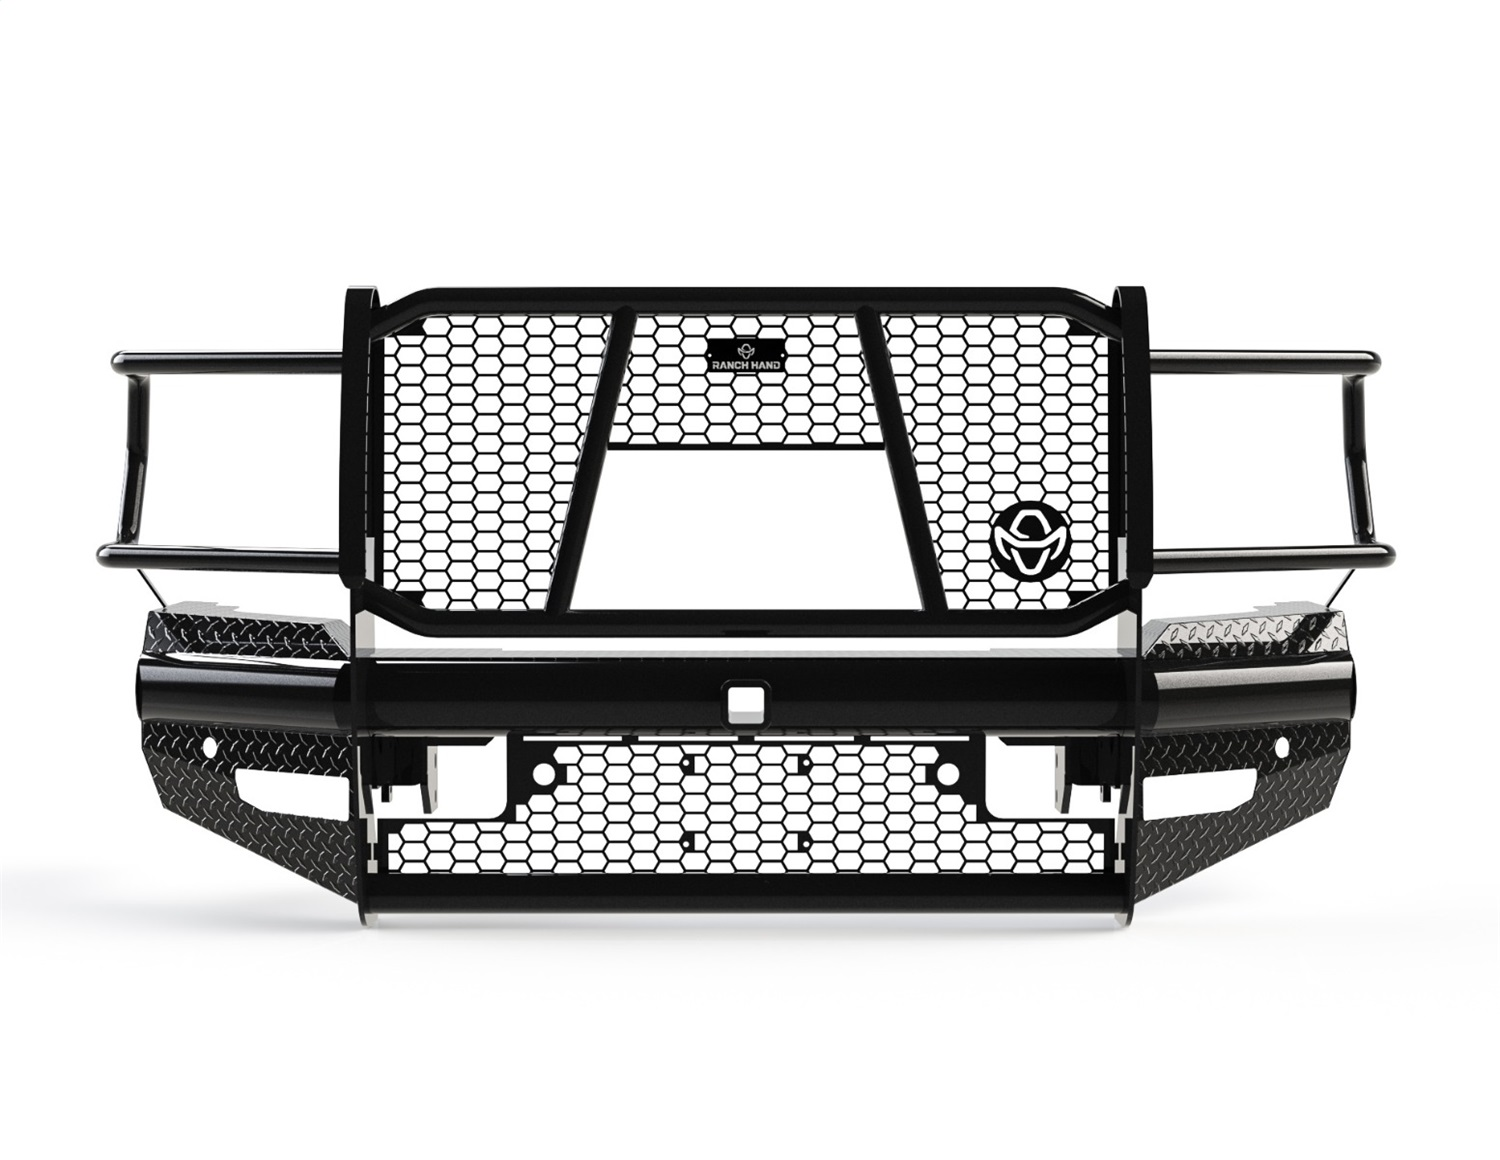 Legend Series Front Bumper, Retains Factory Tow Hooks and Fog Lights, w/ Assist Front Park, Works w/ Sensors And Accomodates Front Camera Cutout